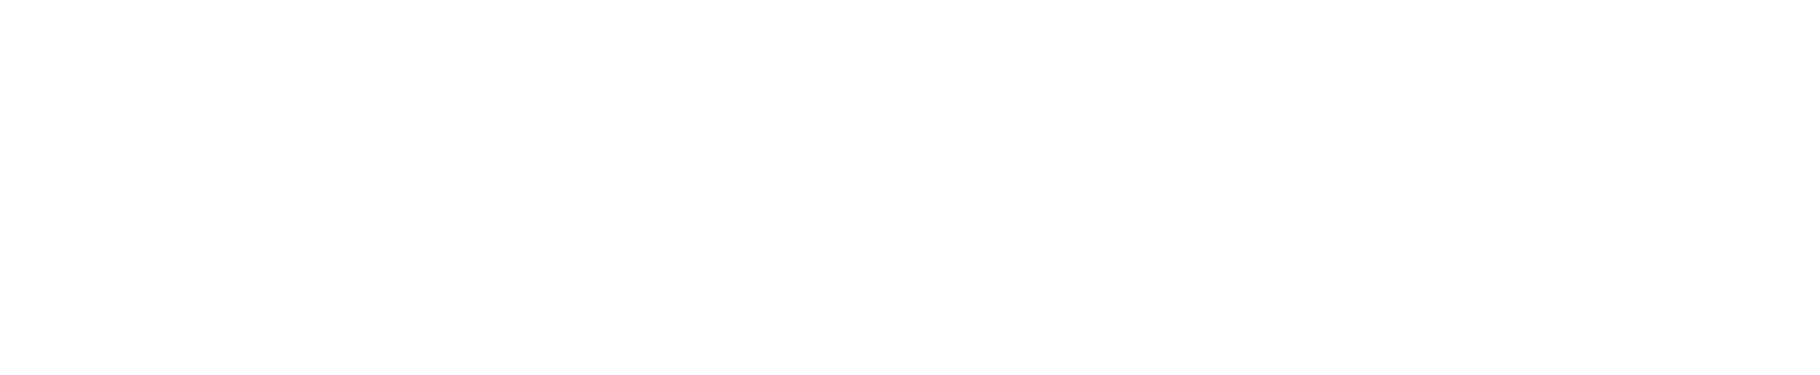 Recent Jobs - Society for Vascular Surgery